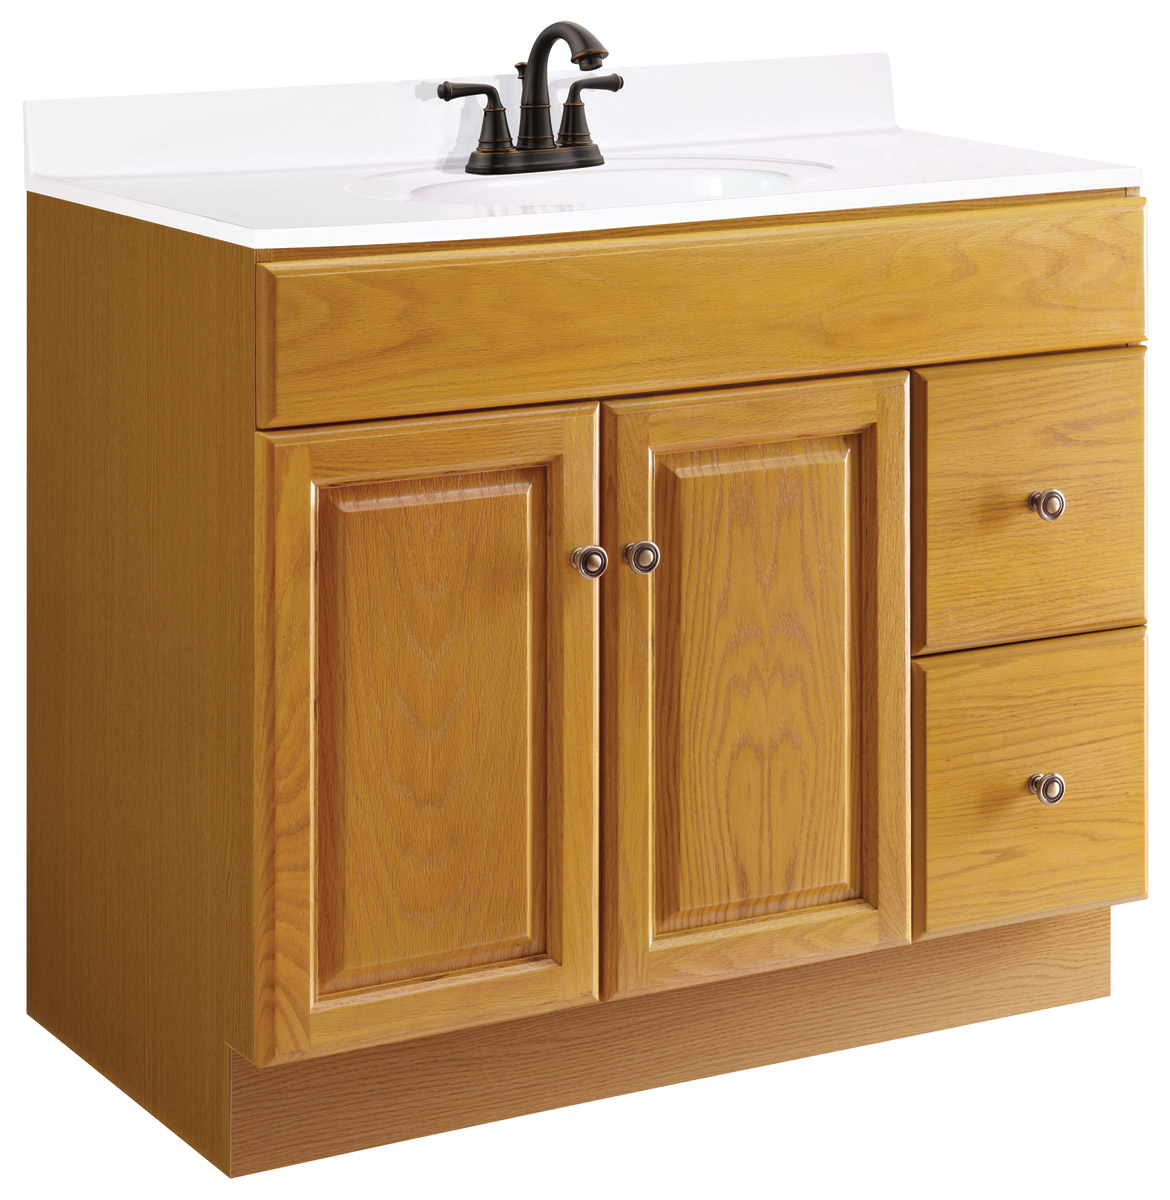 Design House 545178 Claremont Honey Oak Vanity Cabinet with 2-Doors and 2-Drawers 36-Inches by 18-Inches by 31.5-Inches